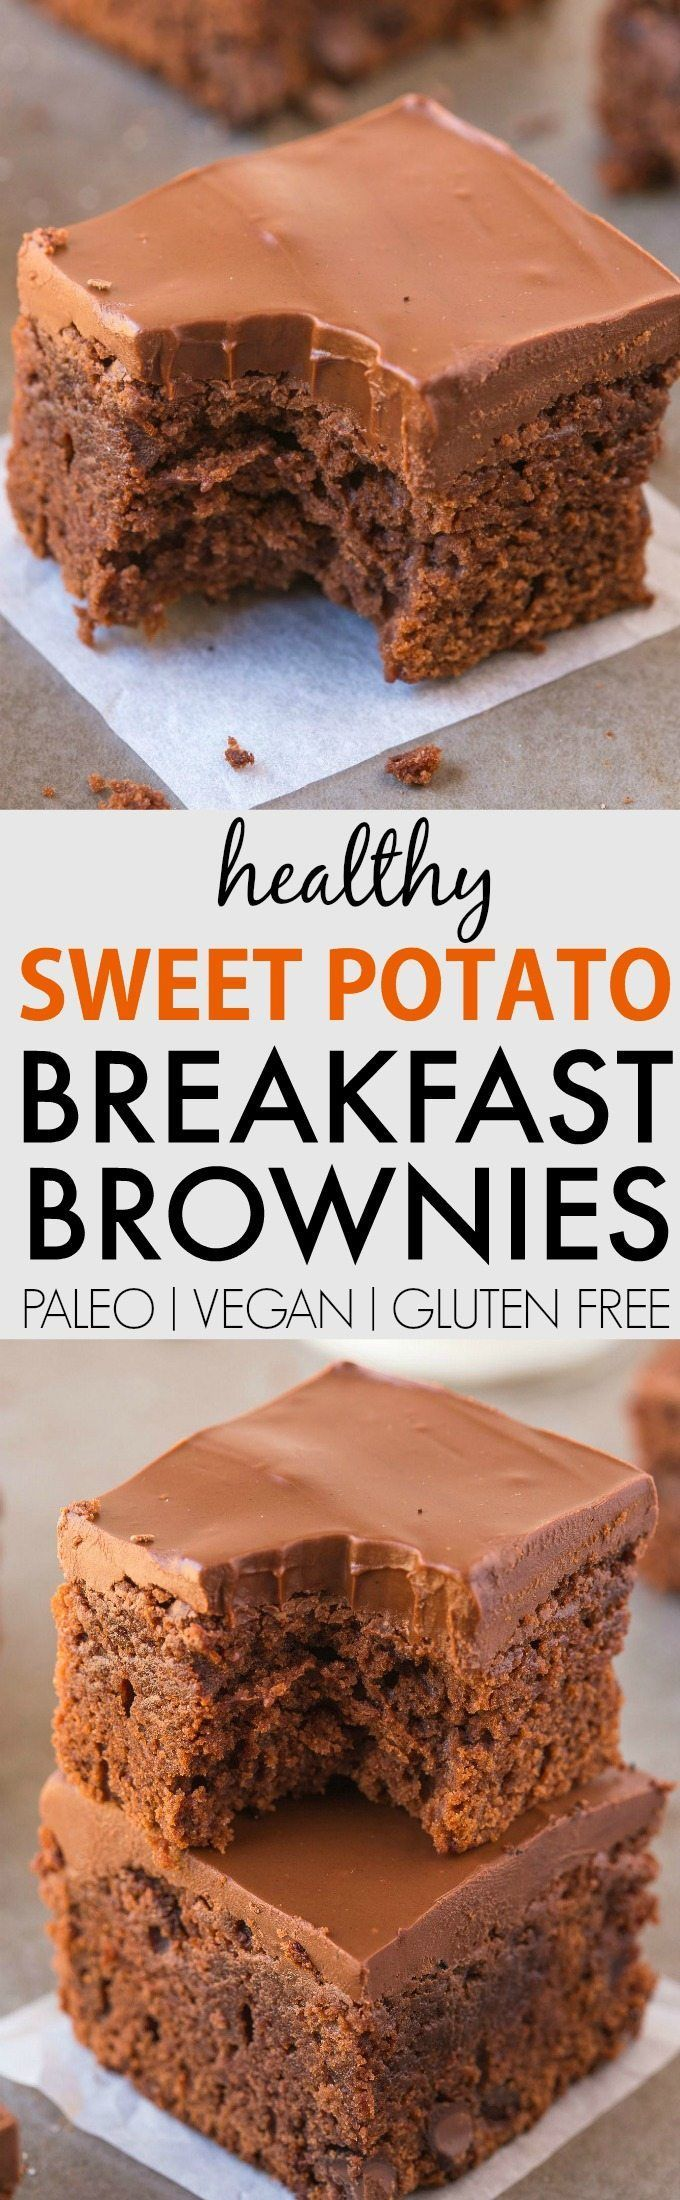 Healthy Sweet Potato Breakfast Brownies (Paleo, Vegan, Gluten Free)- Super fudgy and packed with nutrients, it's a filling and healthy breakfast!